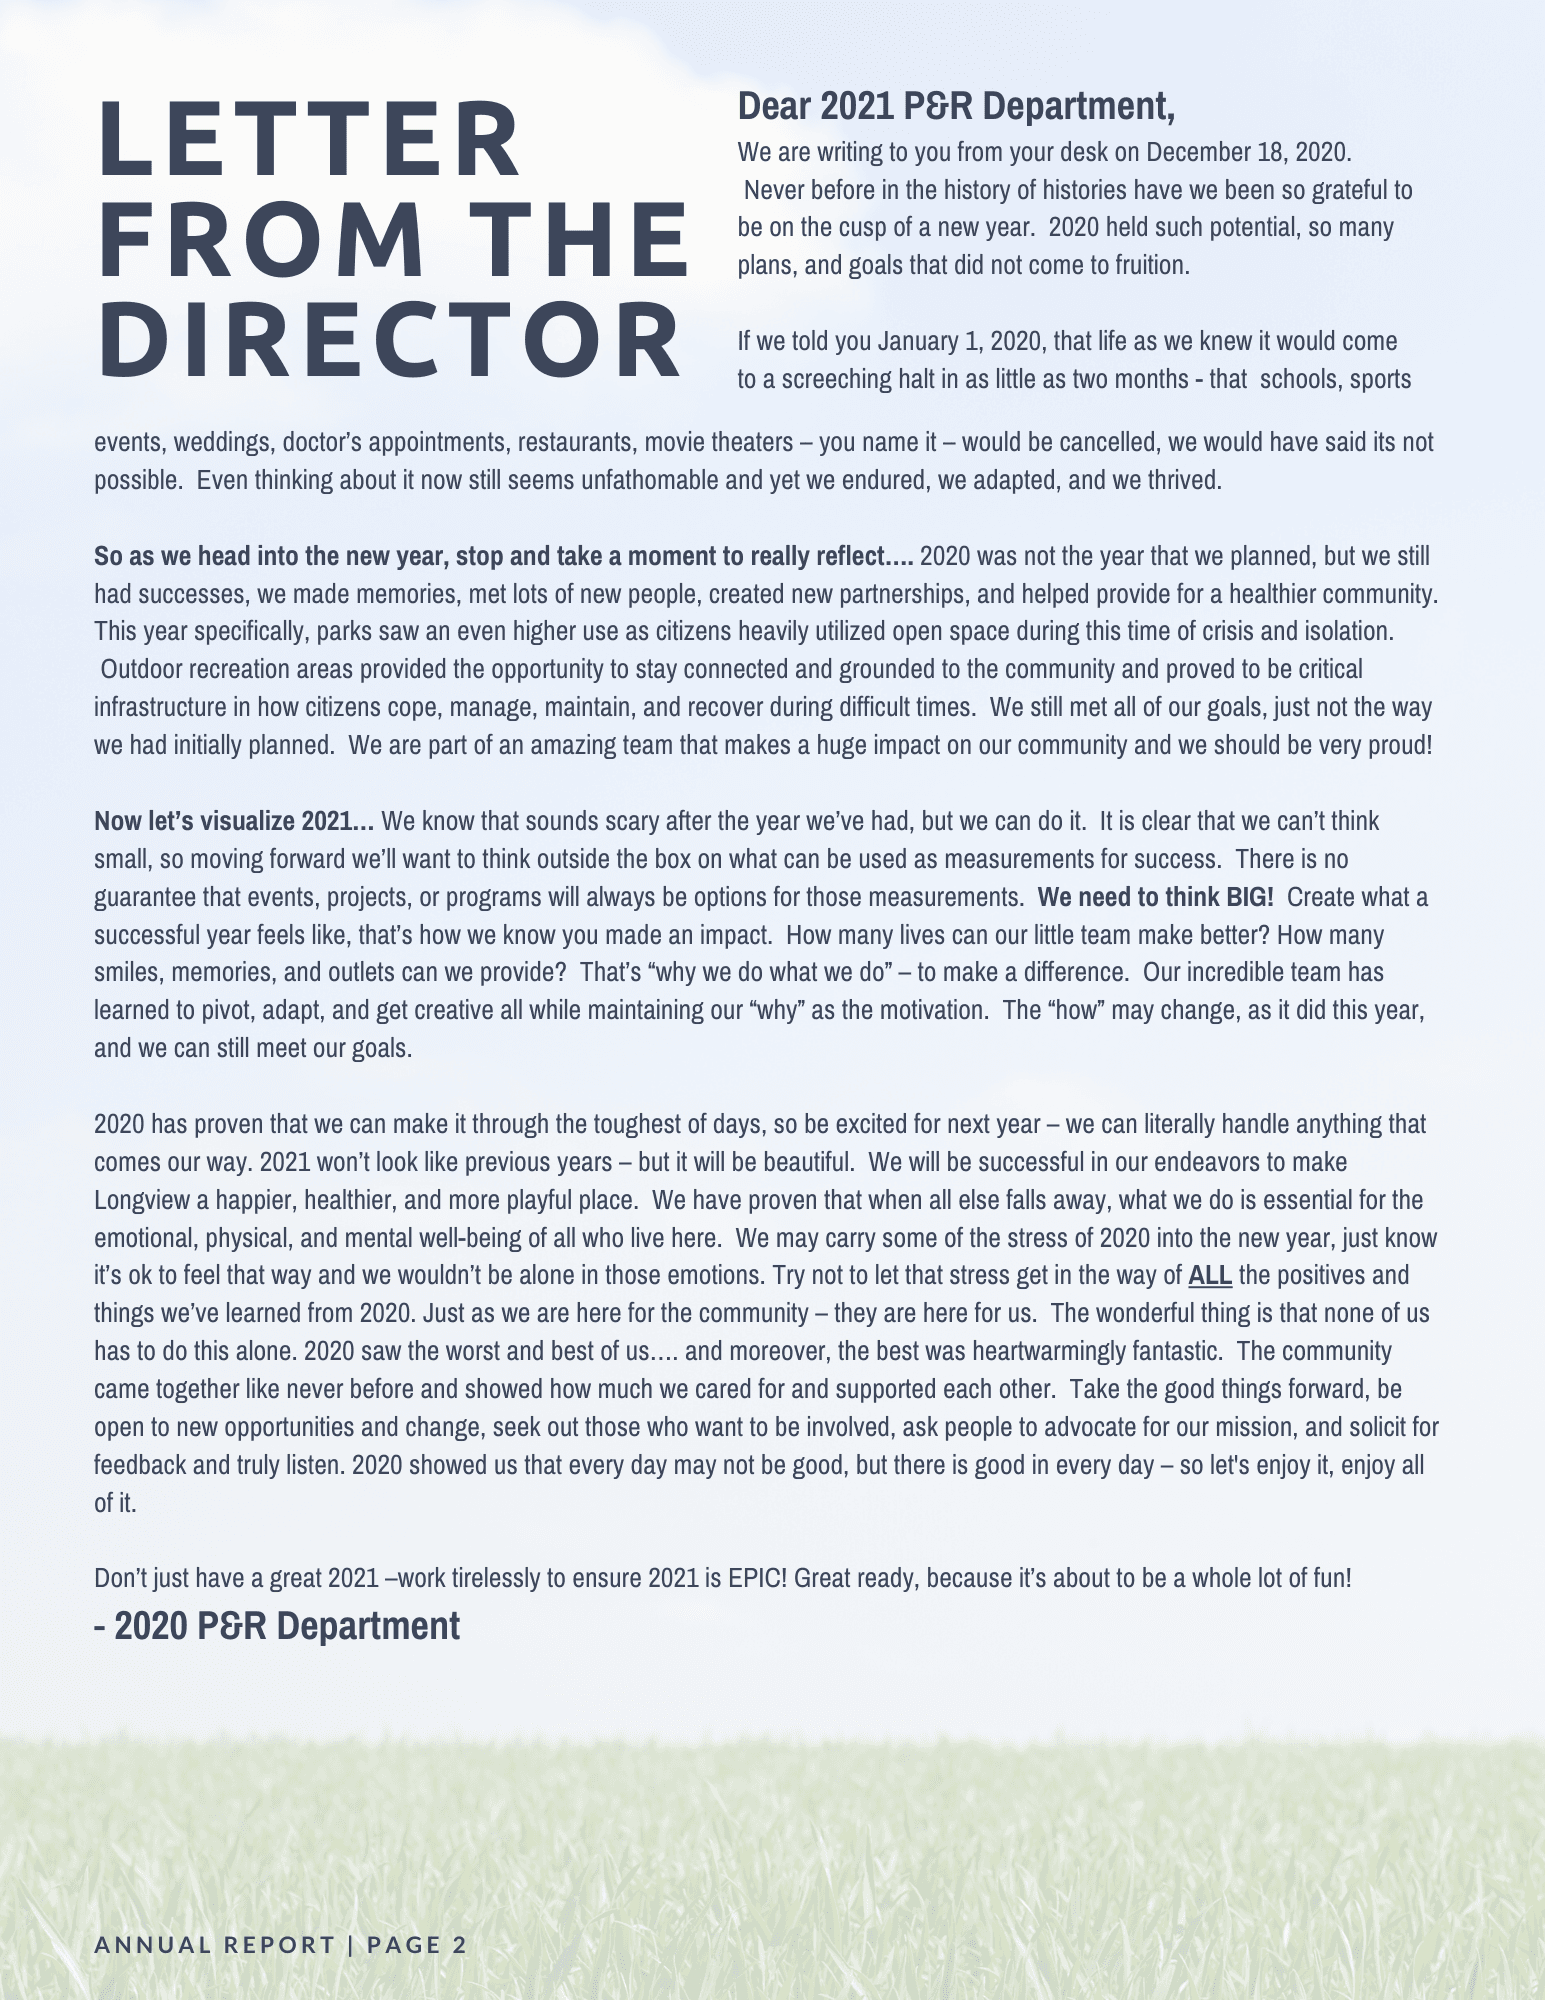 Letter from the Director Image